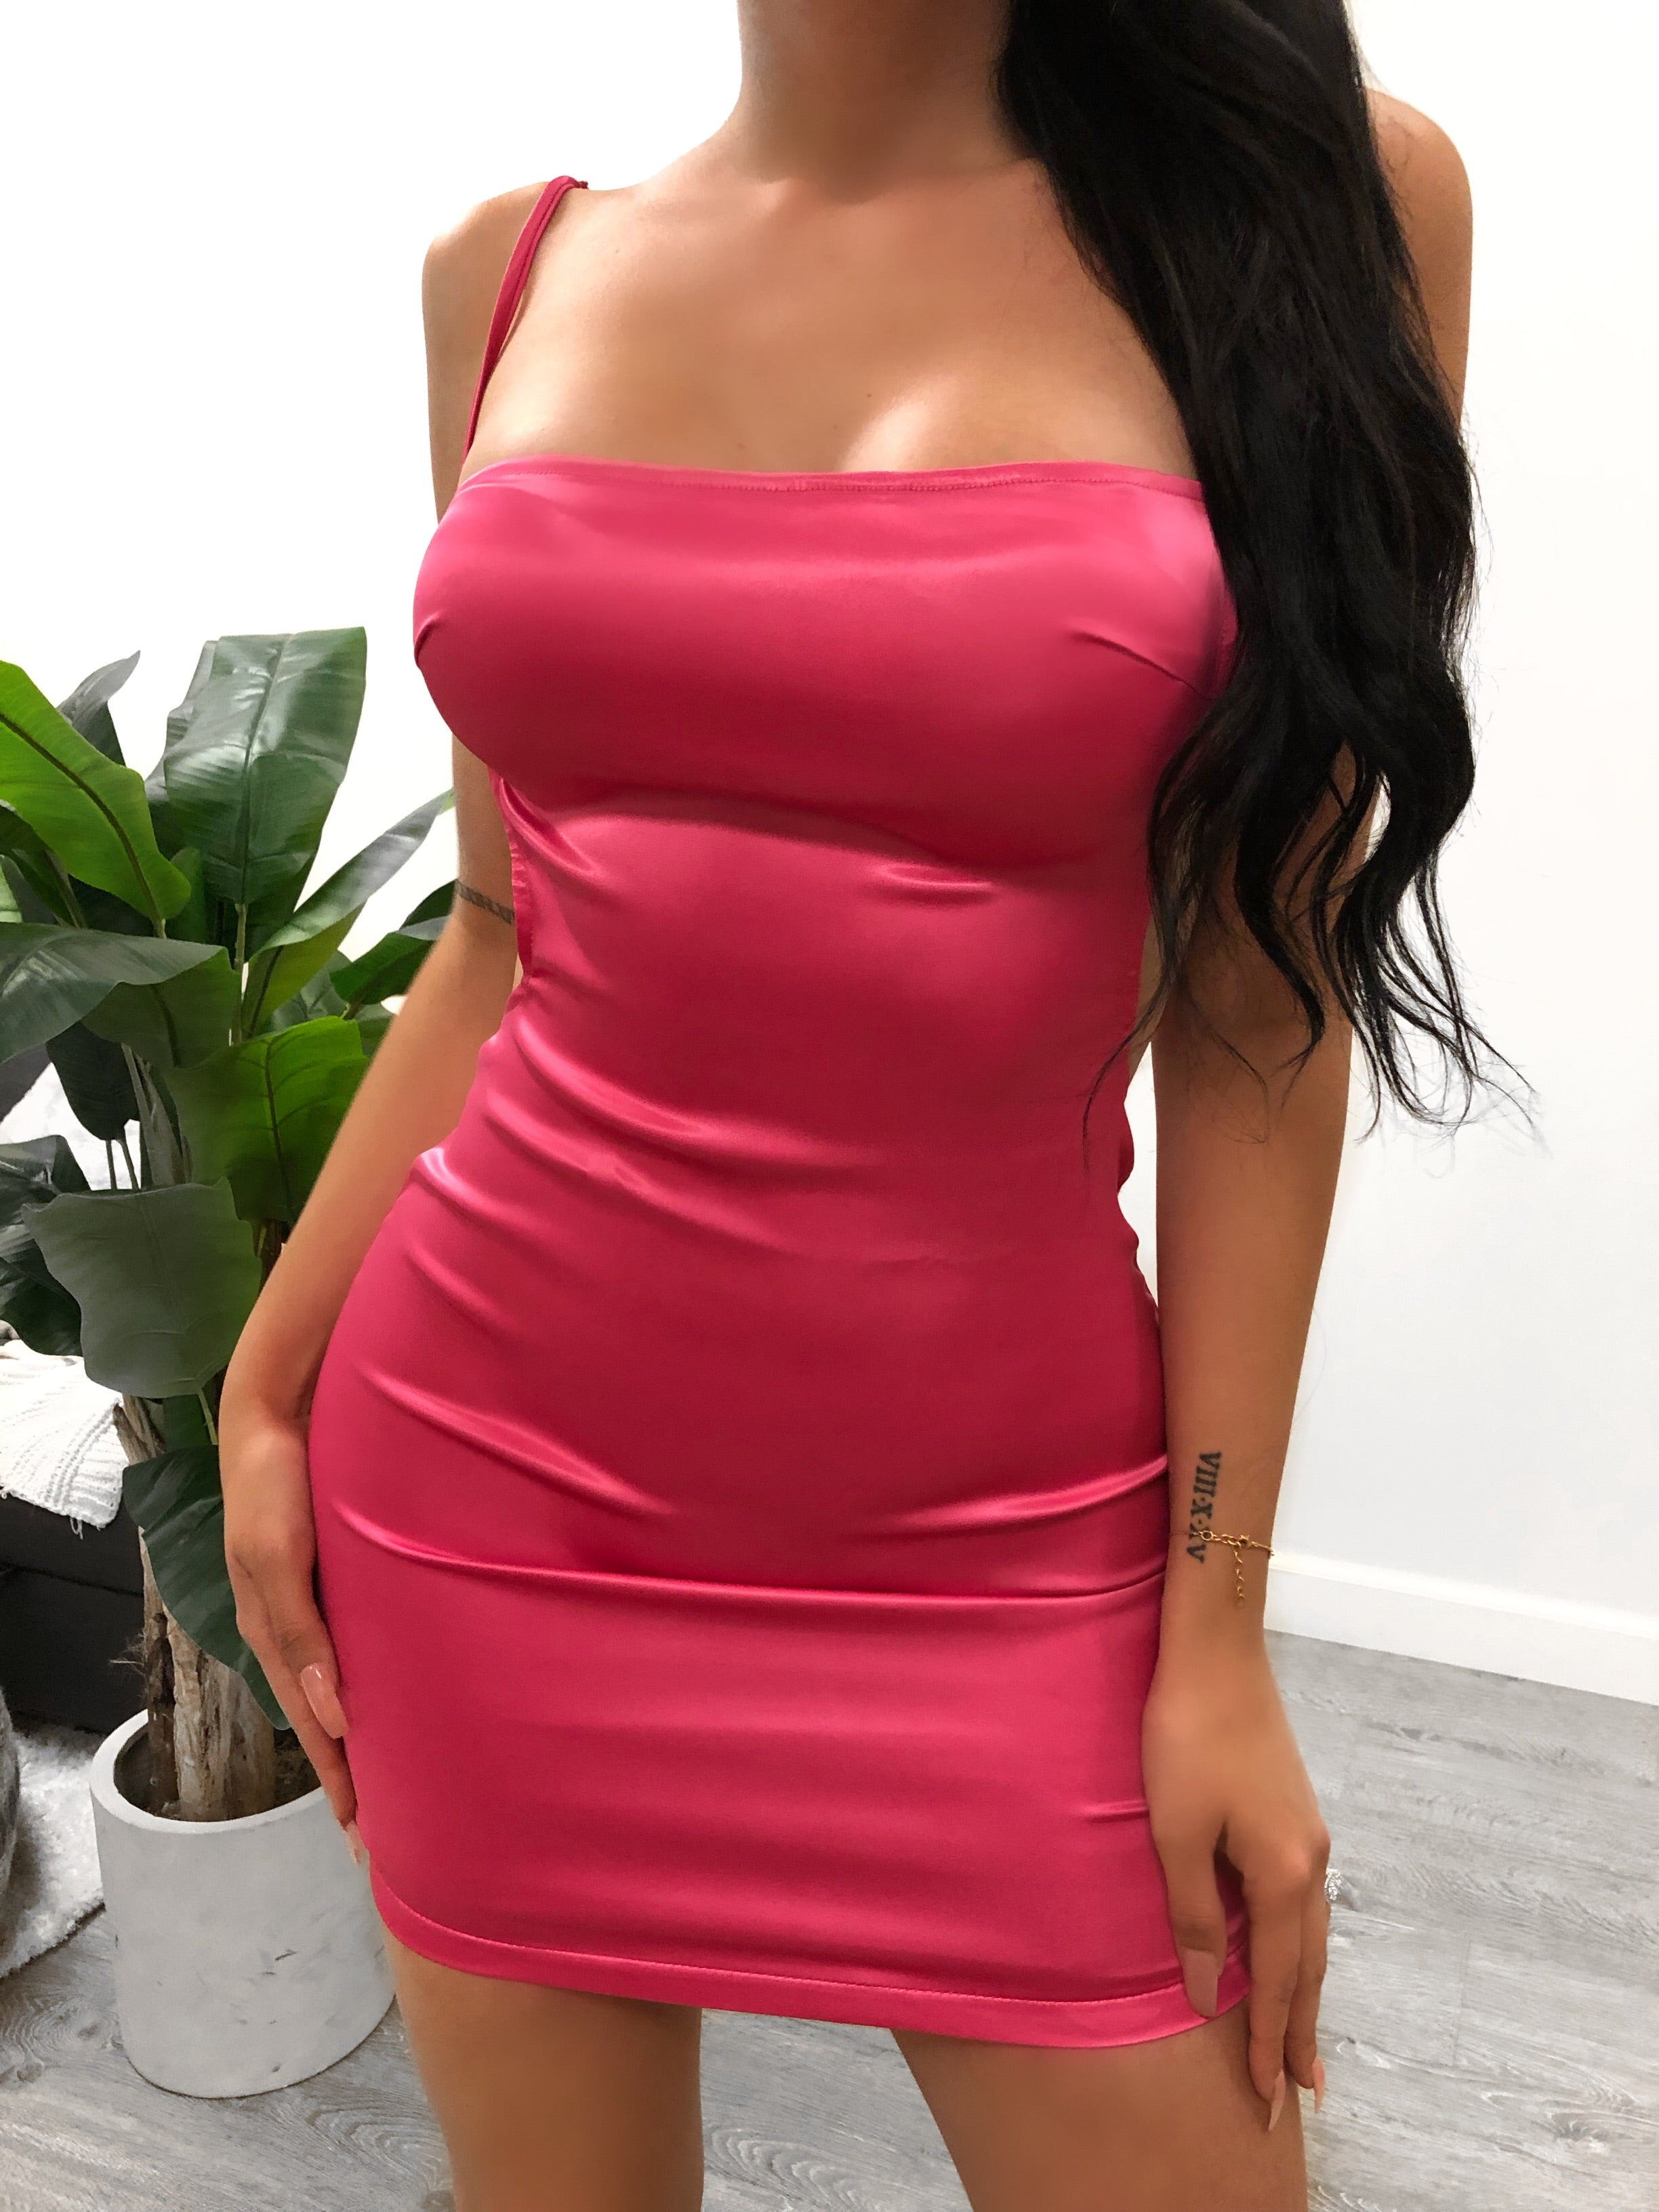 hot pink Satin backless dress,back has backless scoop, has adjsutbale straps. Dress is midi length. Dress comes in multiple colors.